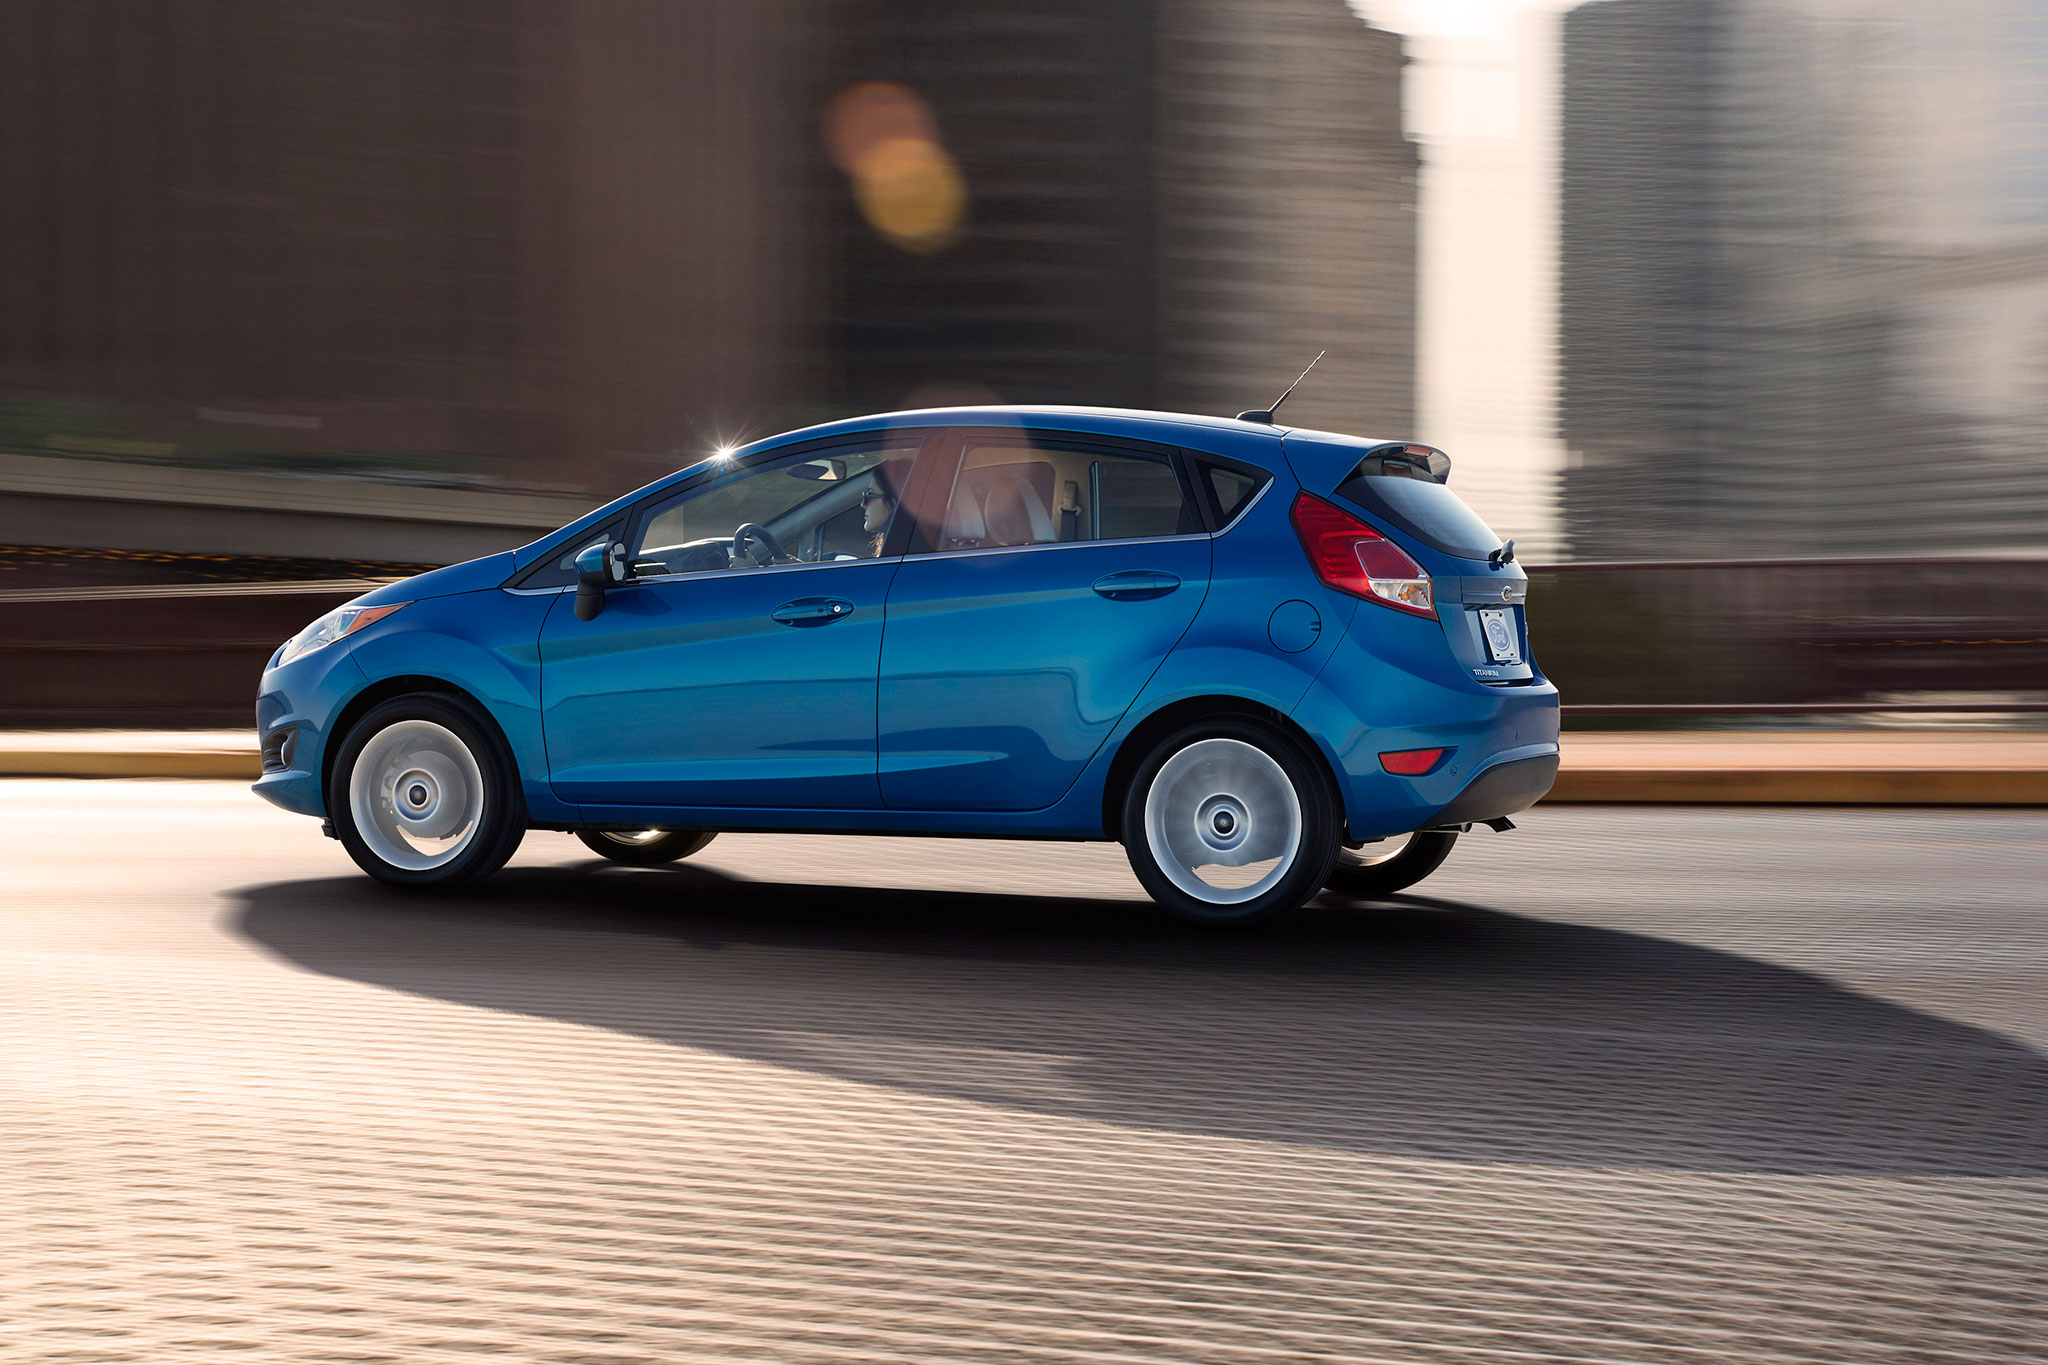 Ford Fiesta Don't Buy  - instead, buy the   Mazda2  , which is a better car in every respect, including build quality and reliability